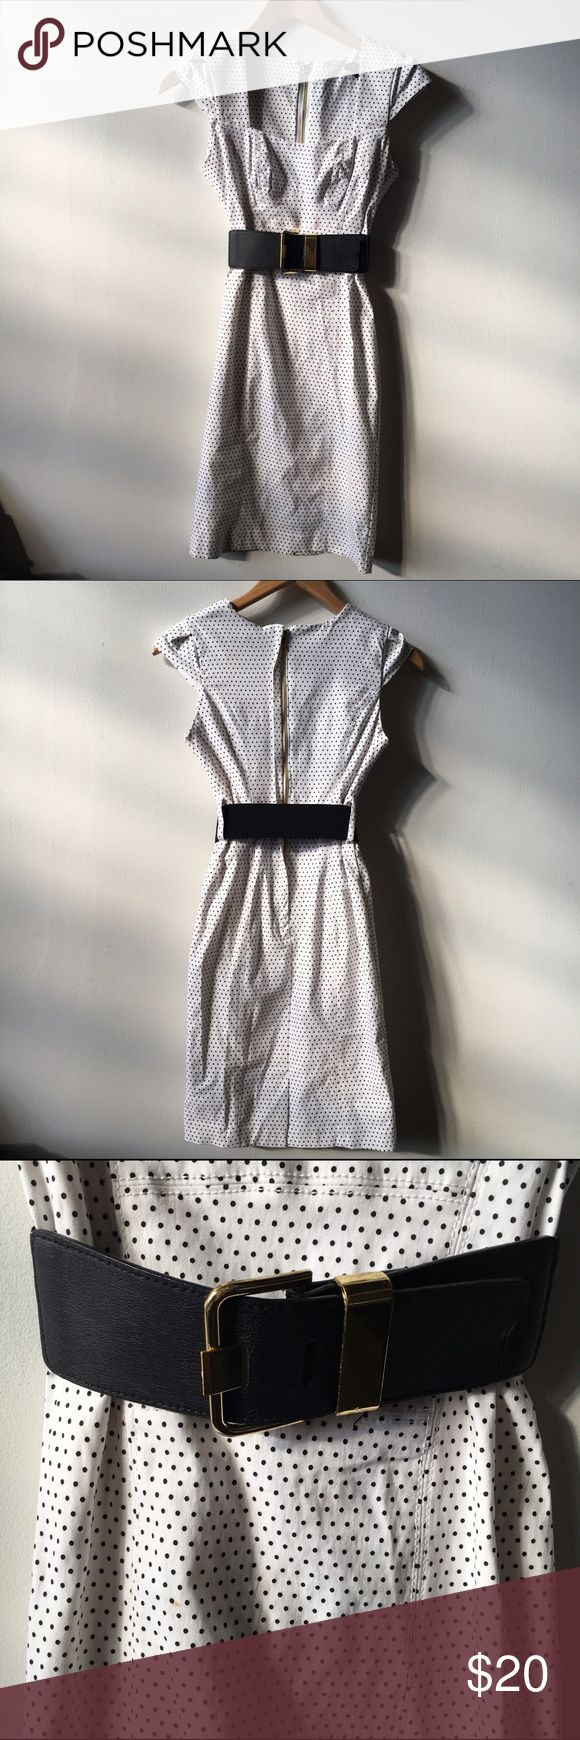 XOXO white polka dot retro belted dress Zippedback Perfect polka dot dress with a thick black and gold belt. Material is stretchy so it will fit more like body con. Very Small stain near belt XOXO Dresses Midi